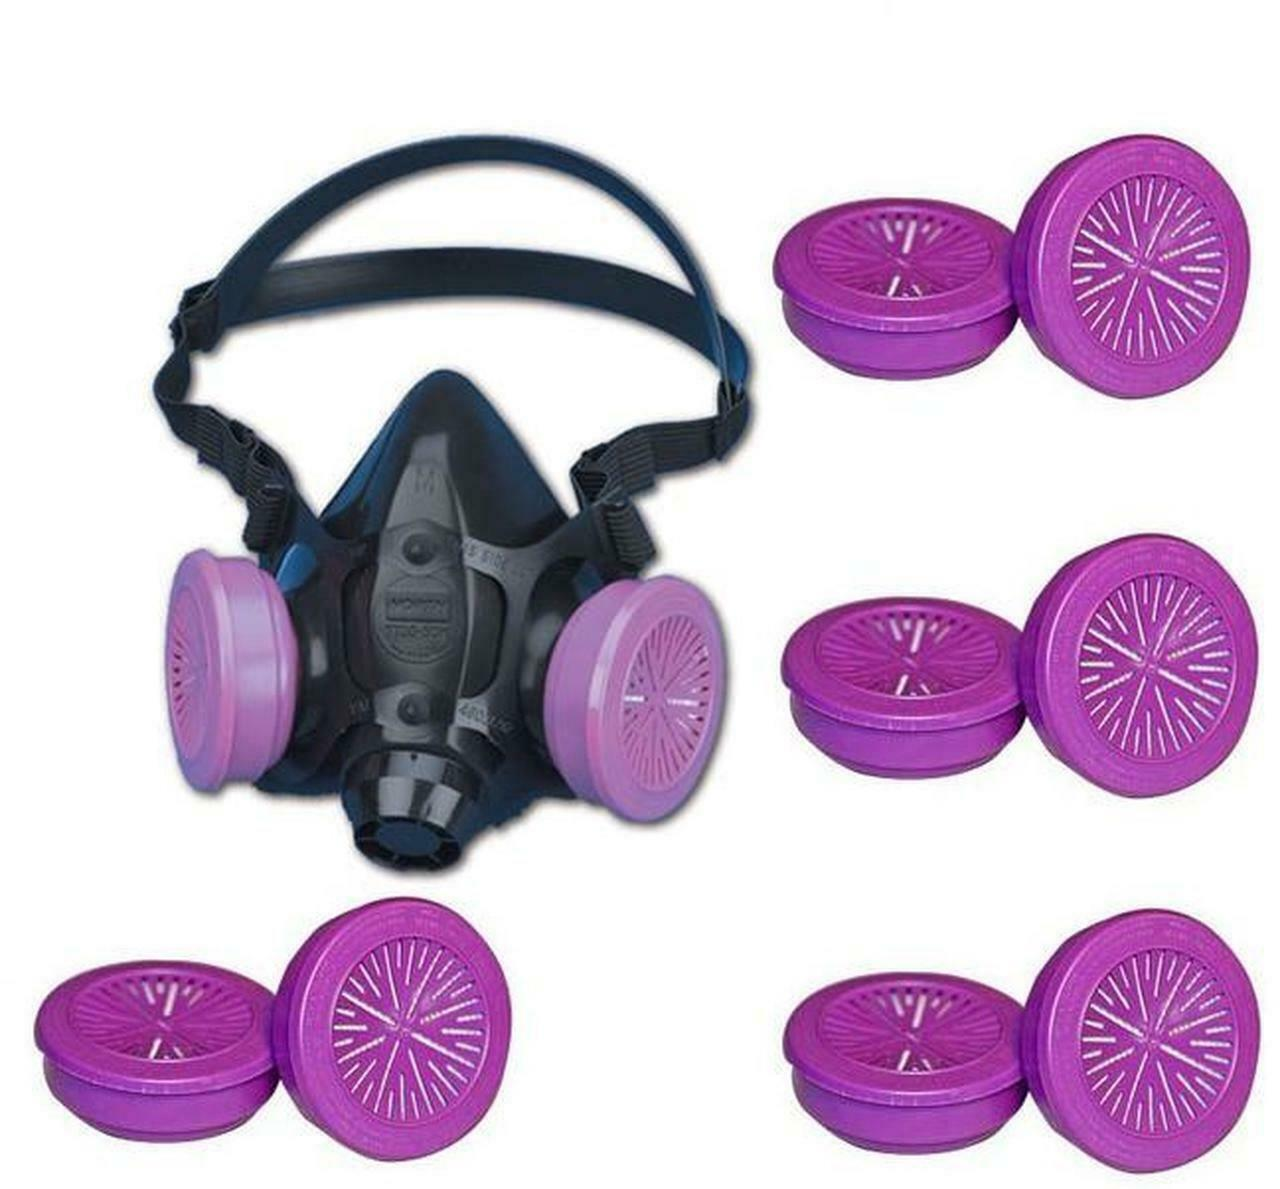 North 7700 Series Half Face Respirator, 7700-30L W/ 4 PR. 7580P1OO, Size: LARGE Business & Industrial